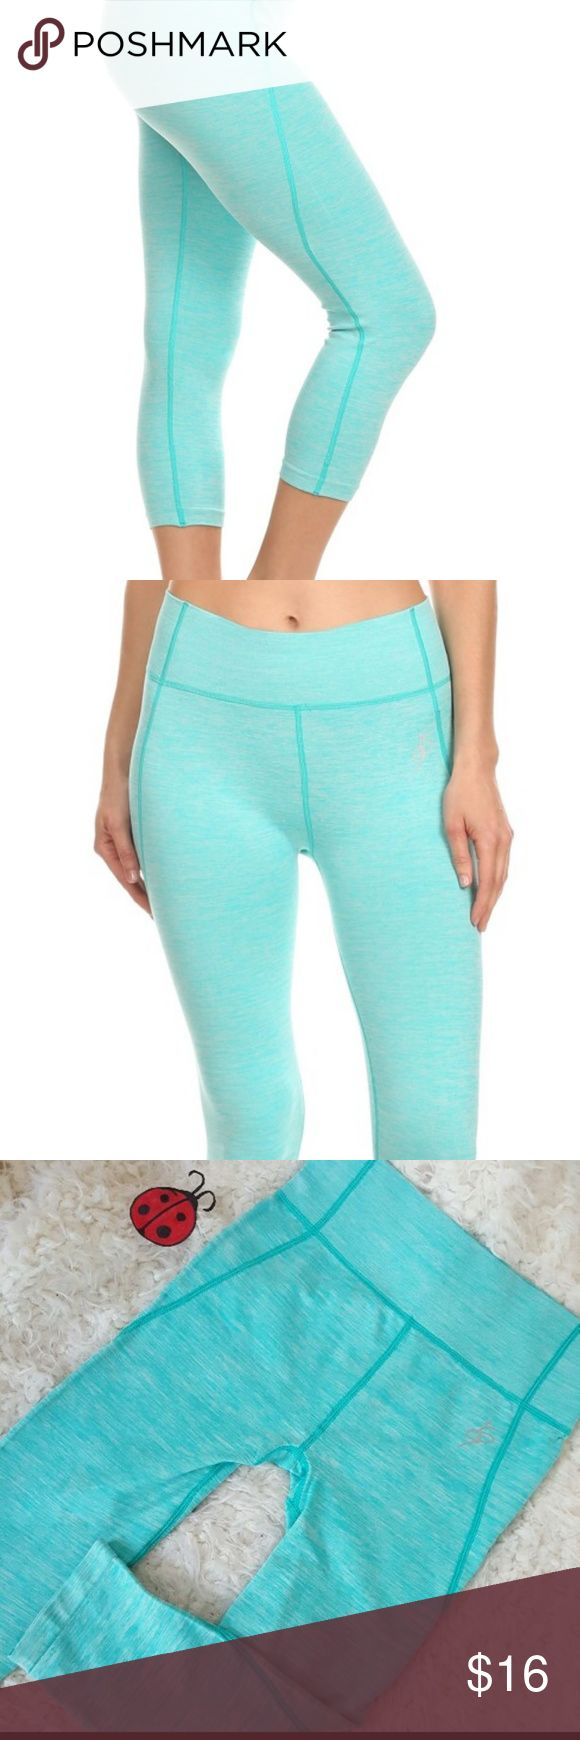 New Mint Capri yoga workout leggings Sale sale sale sale! PINK Capri yoga workout leggings, with four way stretch, moisture wicking and flat seems for extra comfort. 30% polyester 62% nylon 8% spandex  Perfect for the gym, yoga, running , weight lifting or every day wear! sizes available s-m fits 0-6 and l-xl fits 6-12. Pants Leggings